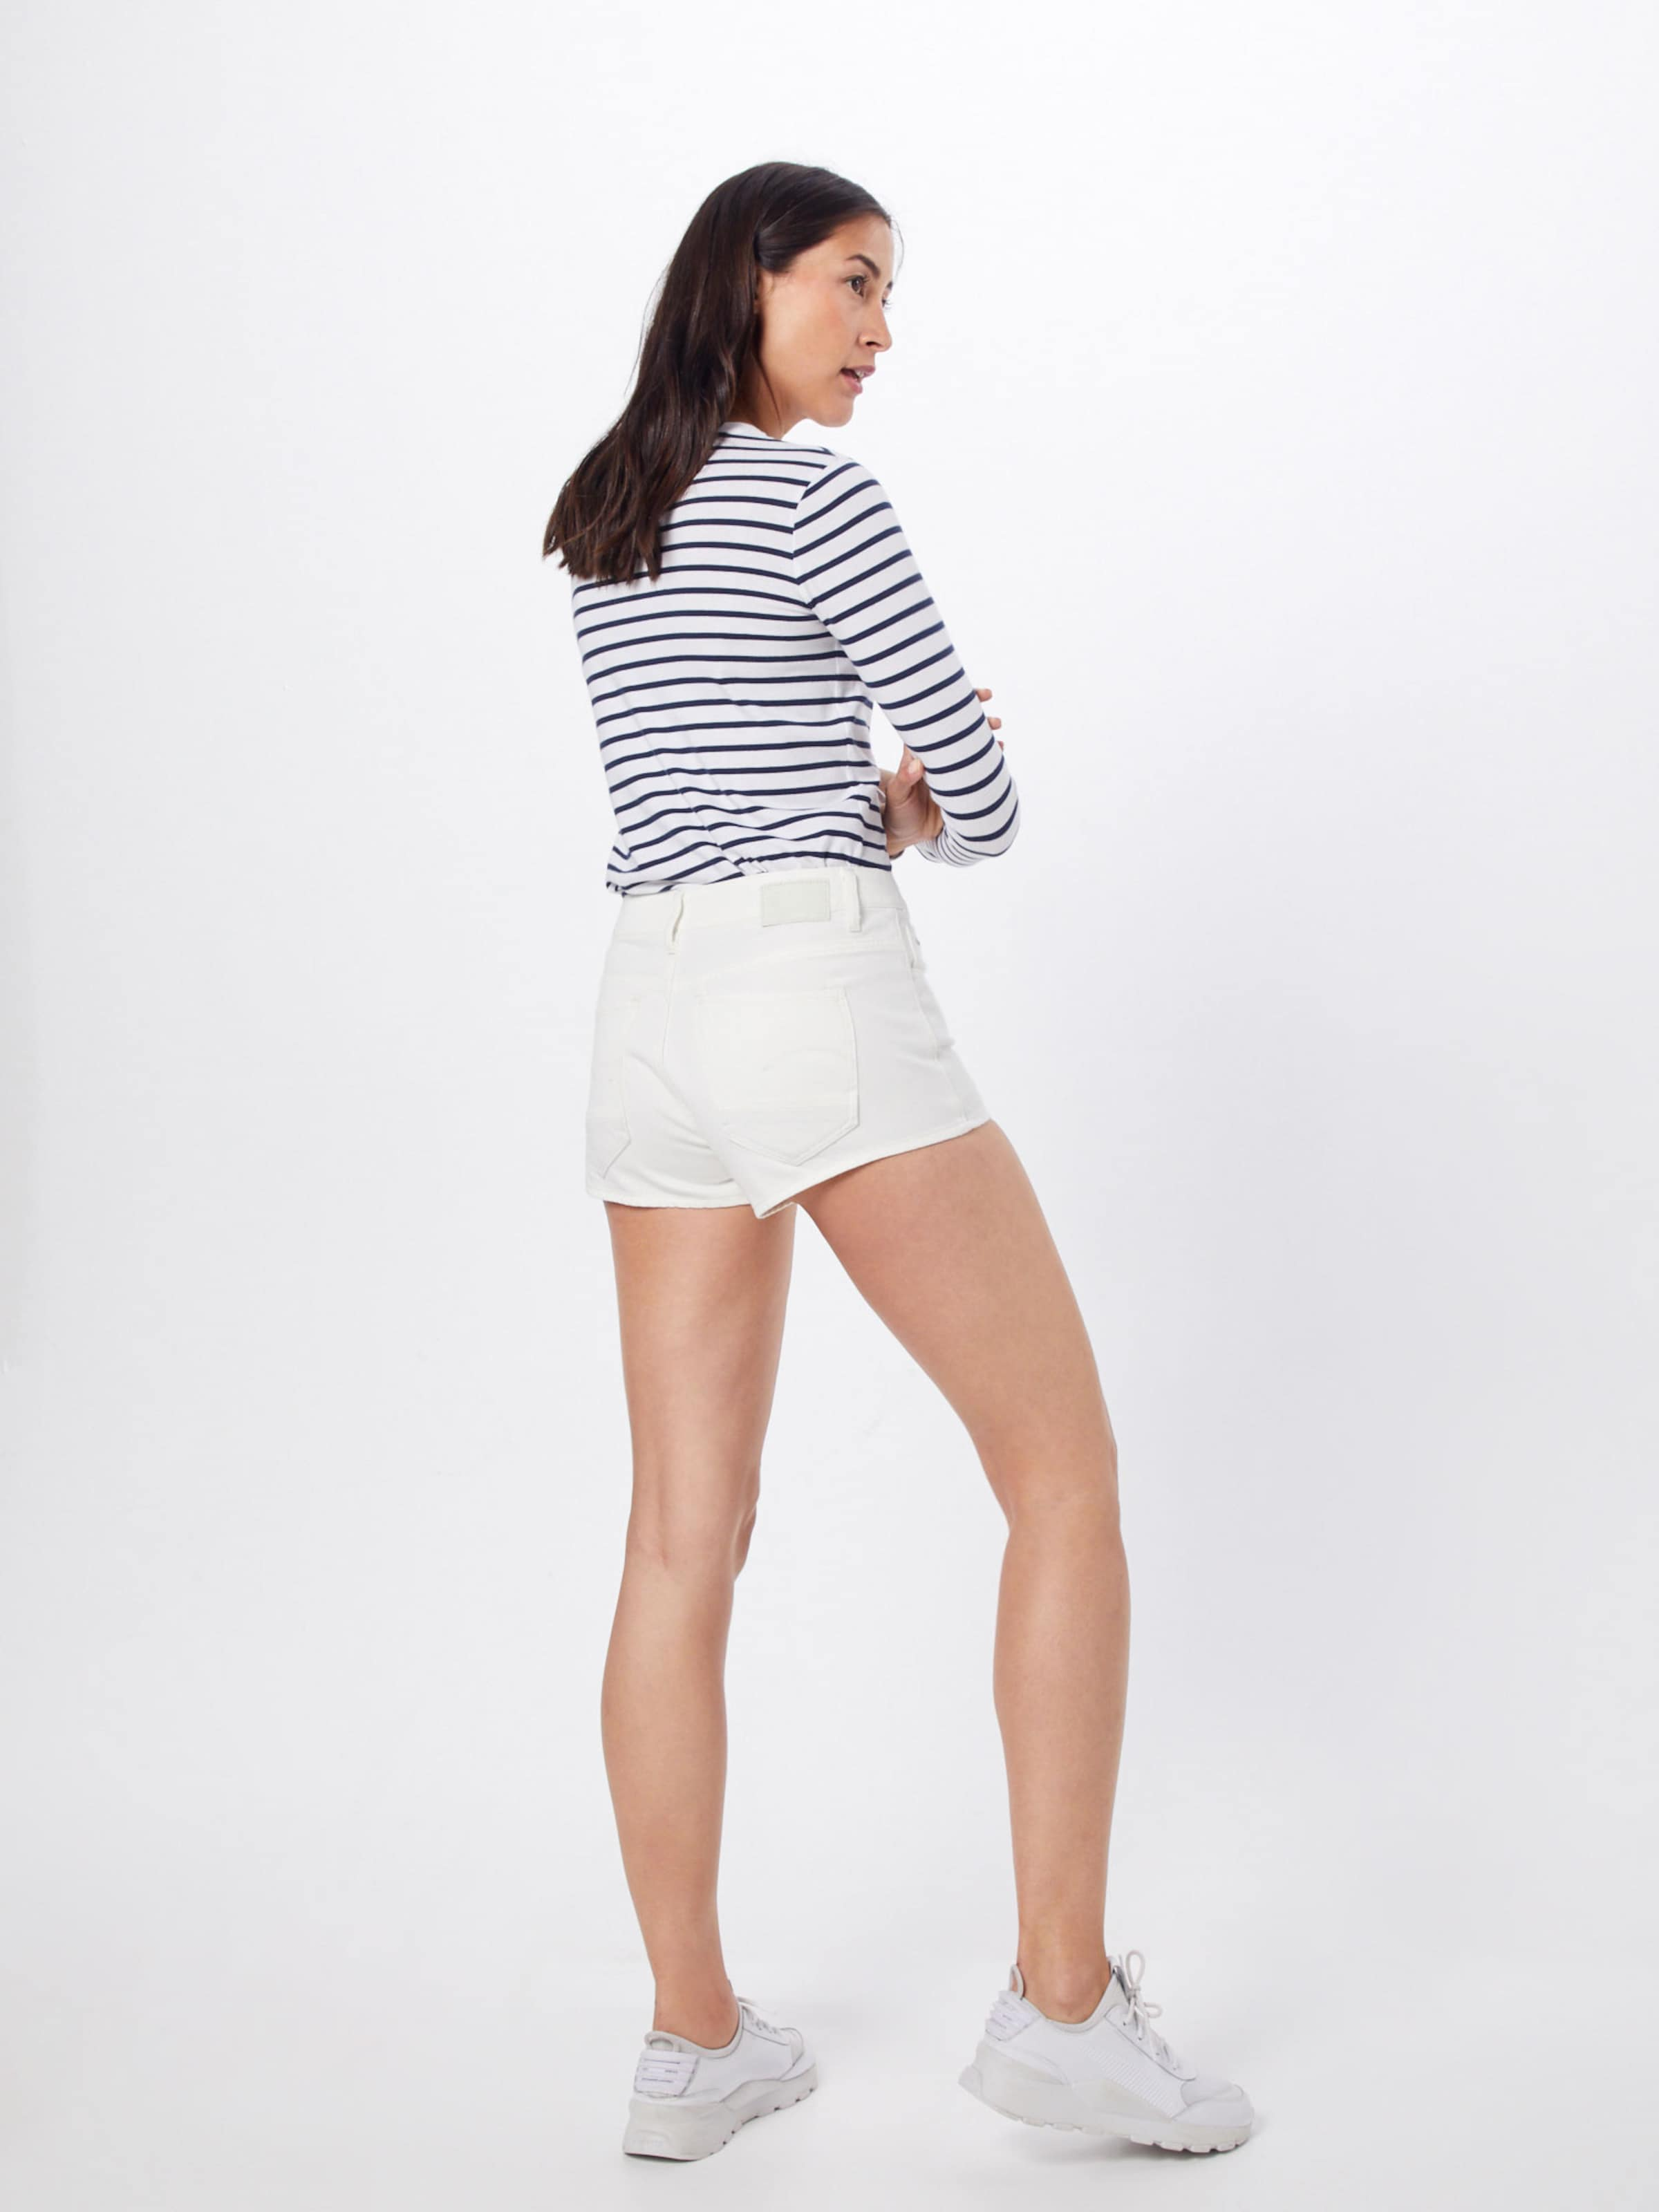 'arc Btn Short 0 Raw Jean G star En Wmn' 2 Blanc nOy8vwN0mP